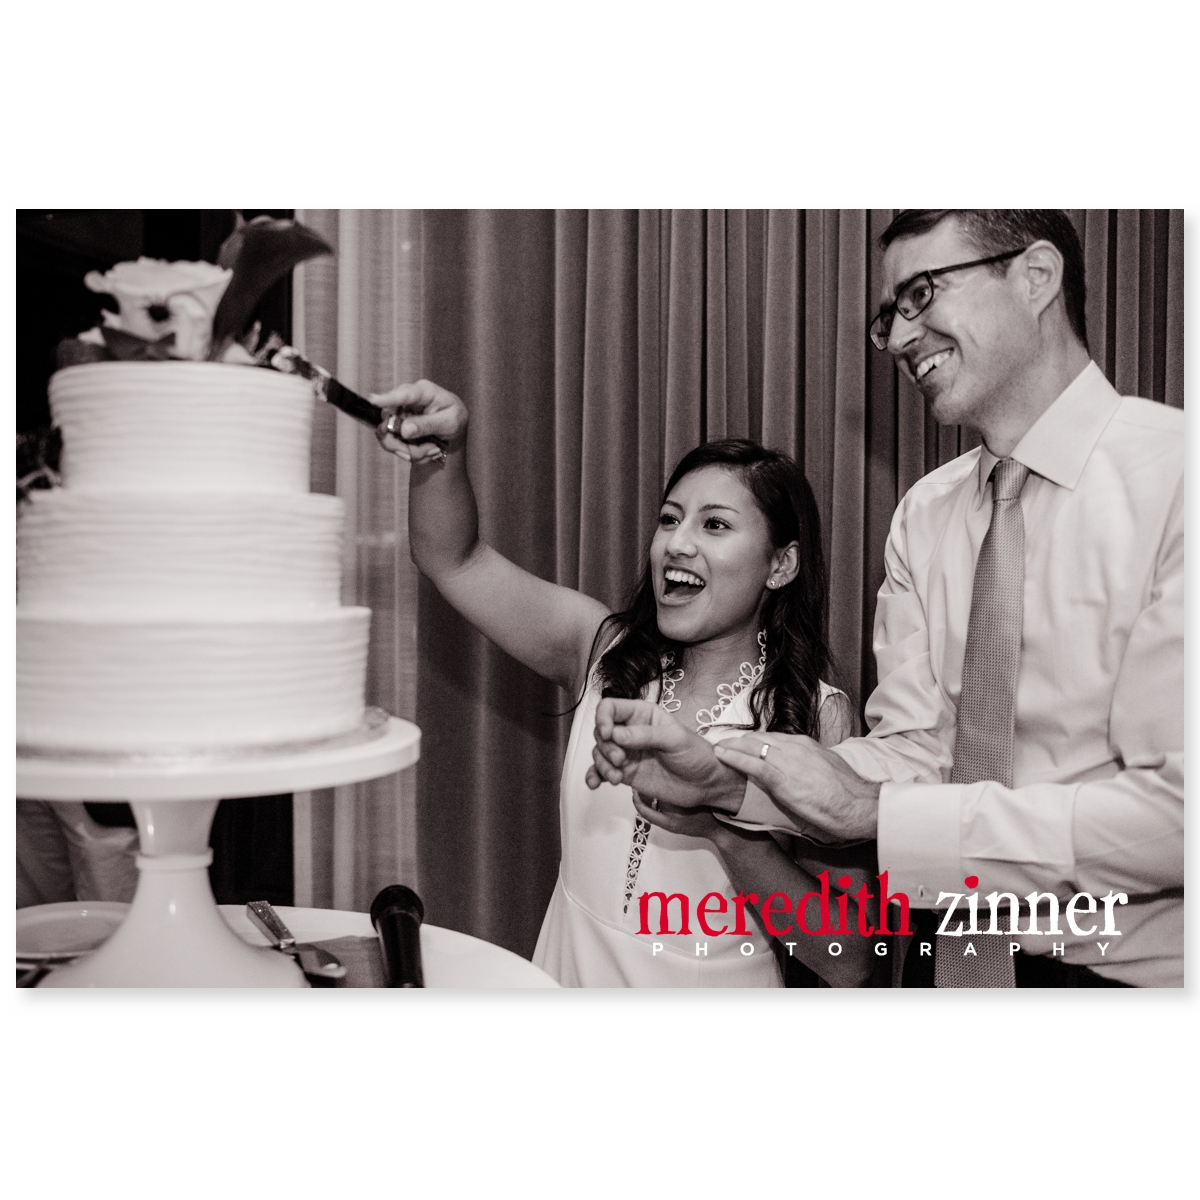 Meredith_Zinner_Photography_StilesCelebration_0311